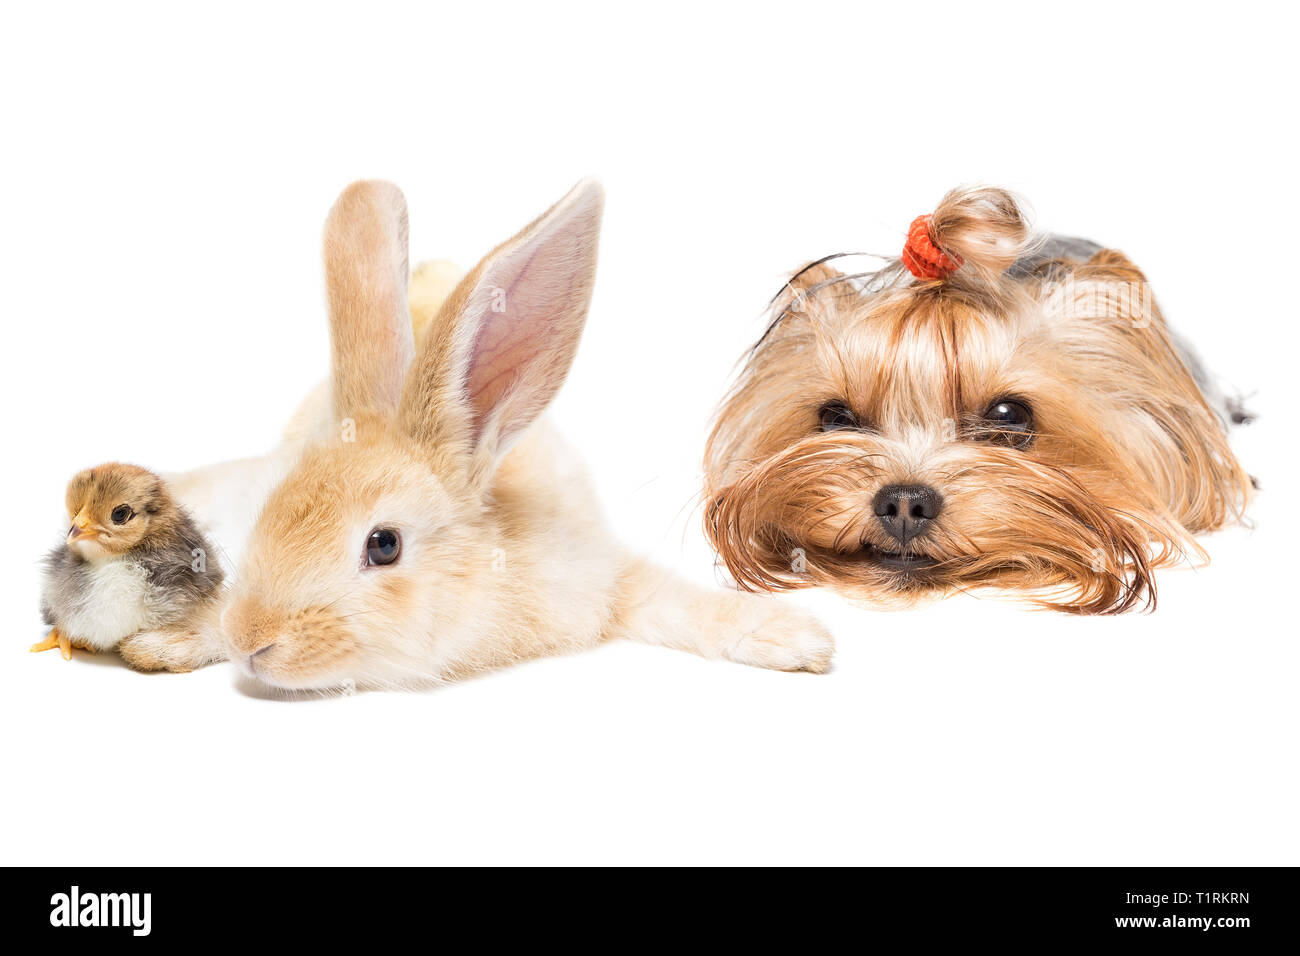 Dog breed yorkshire terrier rabbit and chicken on white background - Stock Image